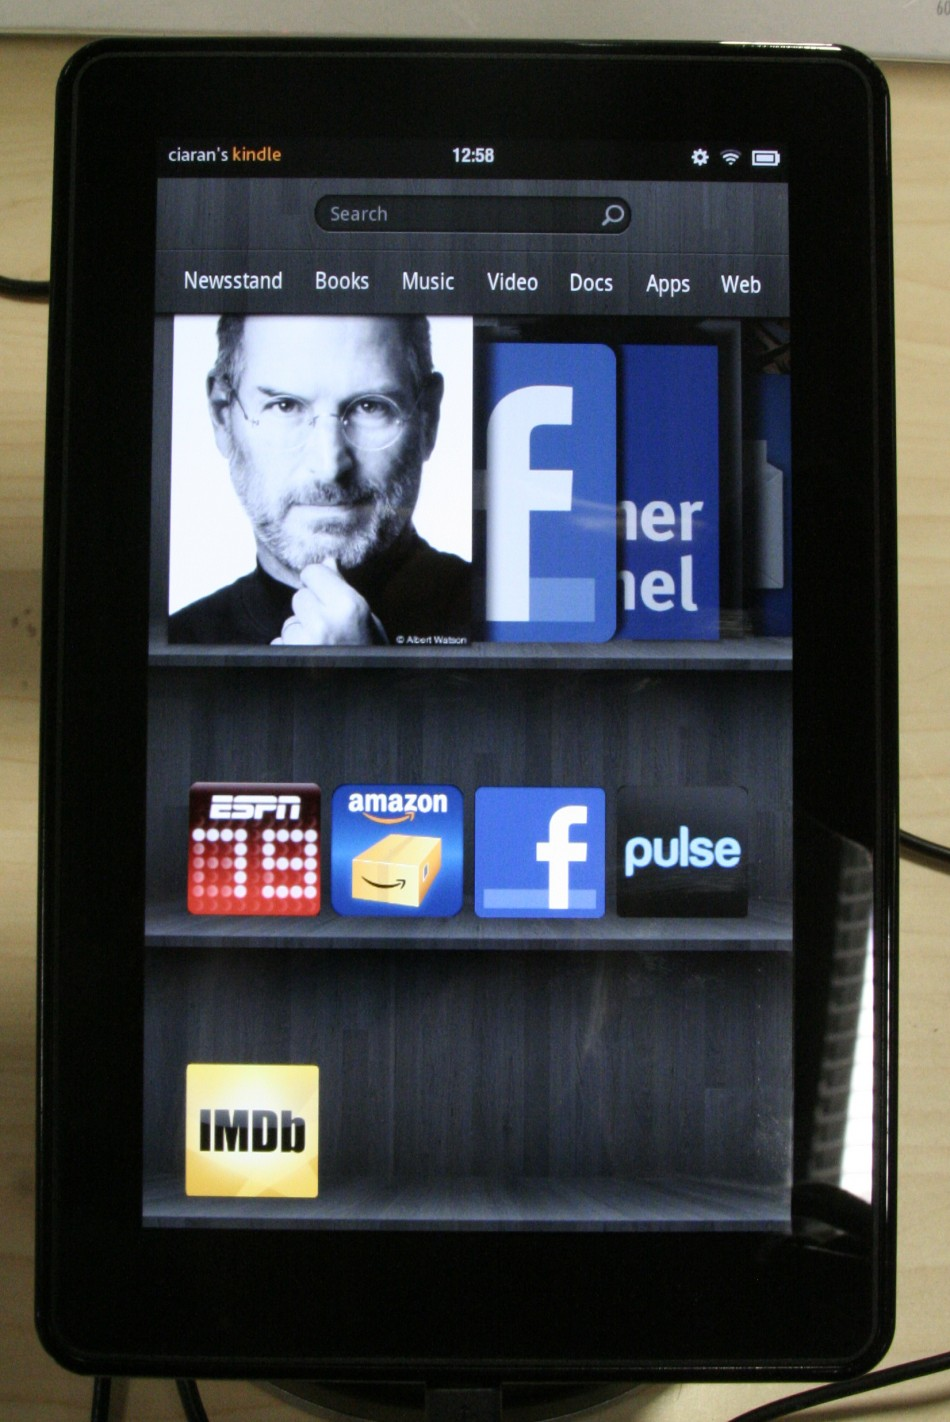 Android 4.1.1 Jelly Bean AOSP ROM for Amazon Kindle Fire [INSTALL GUIDE]